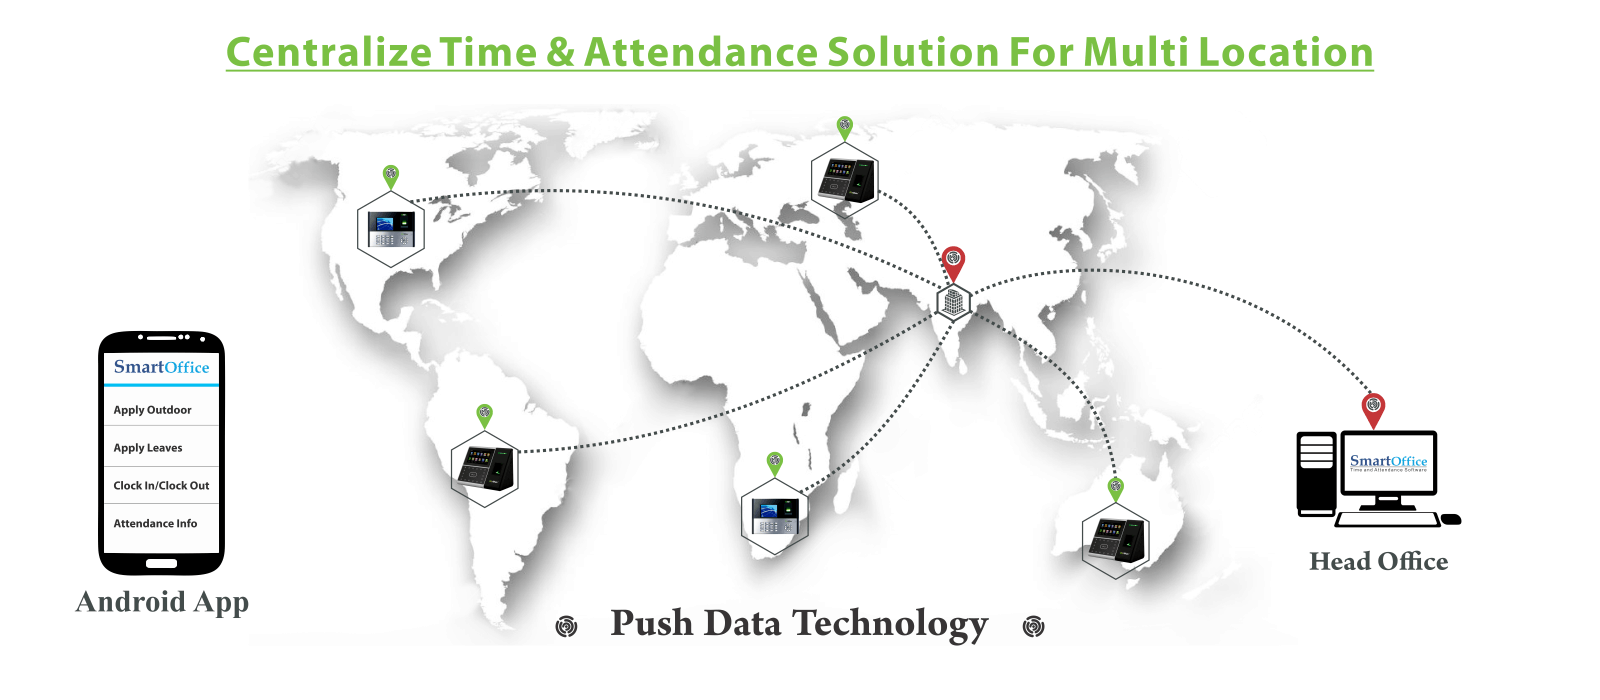 Multi Location Centralized Time Attendance Solution